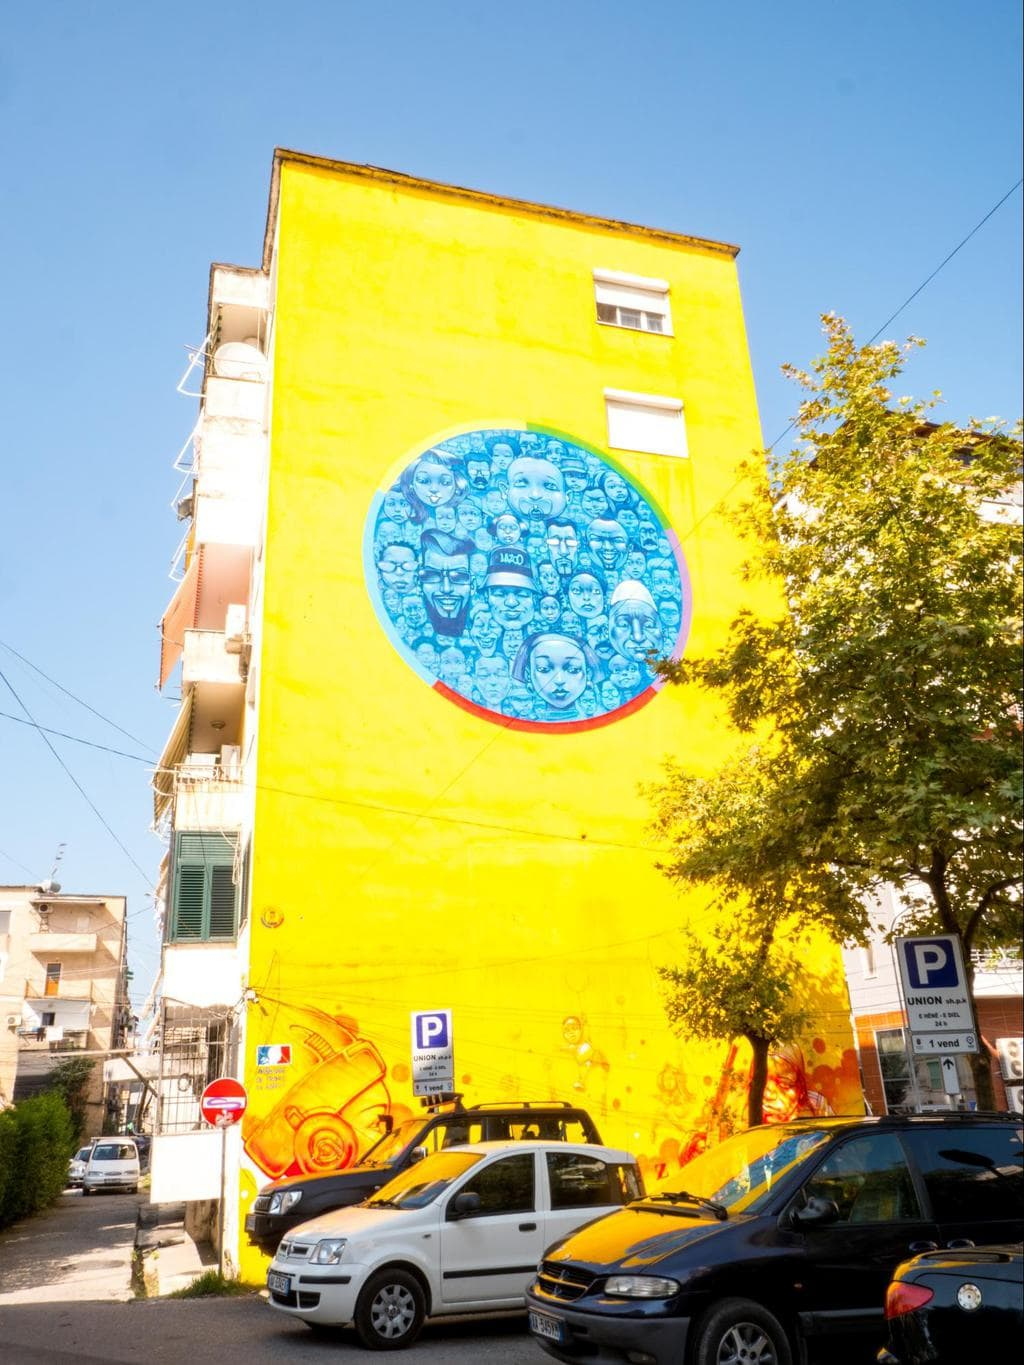 One of the many wall murals in Blloku